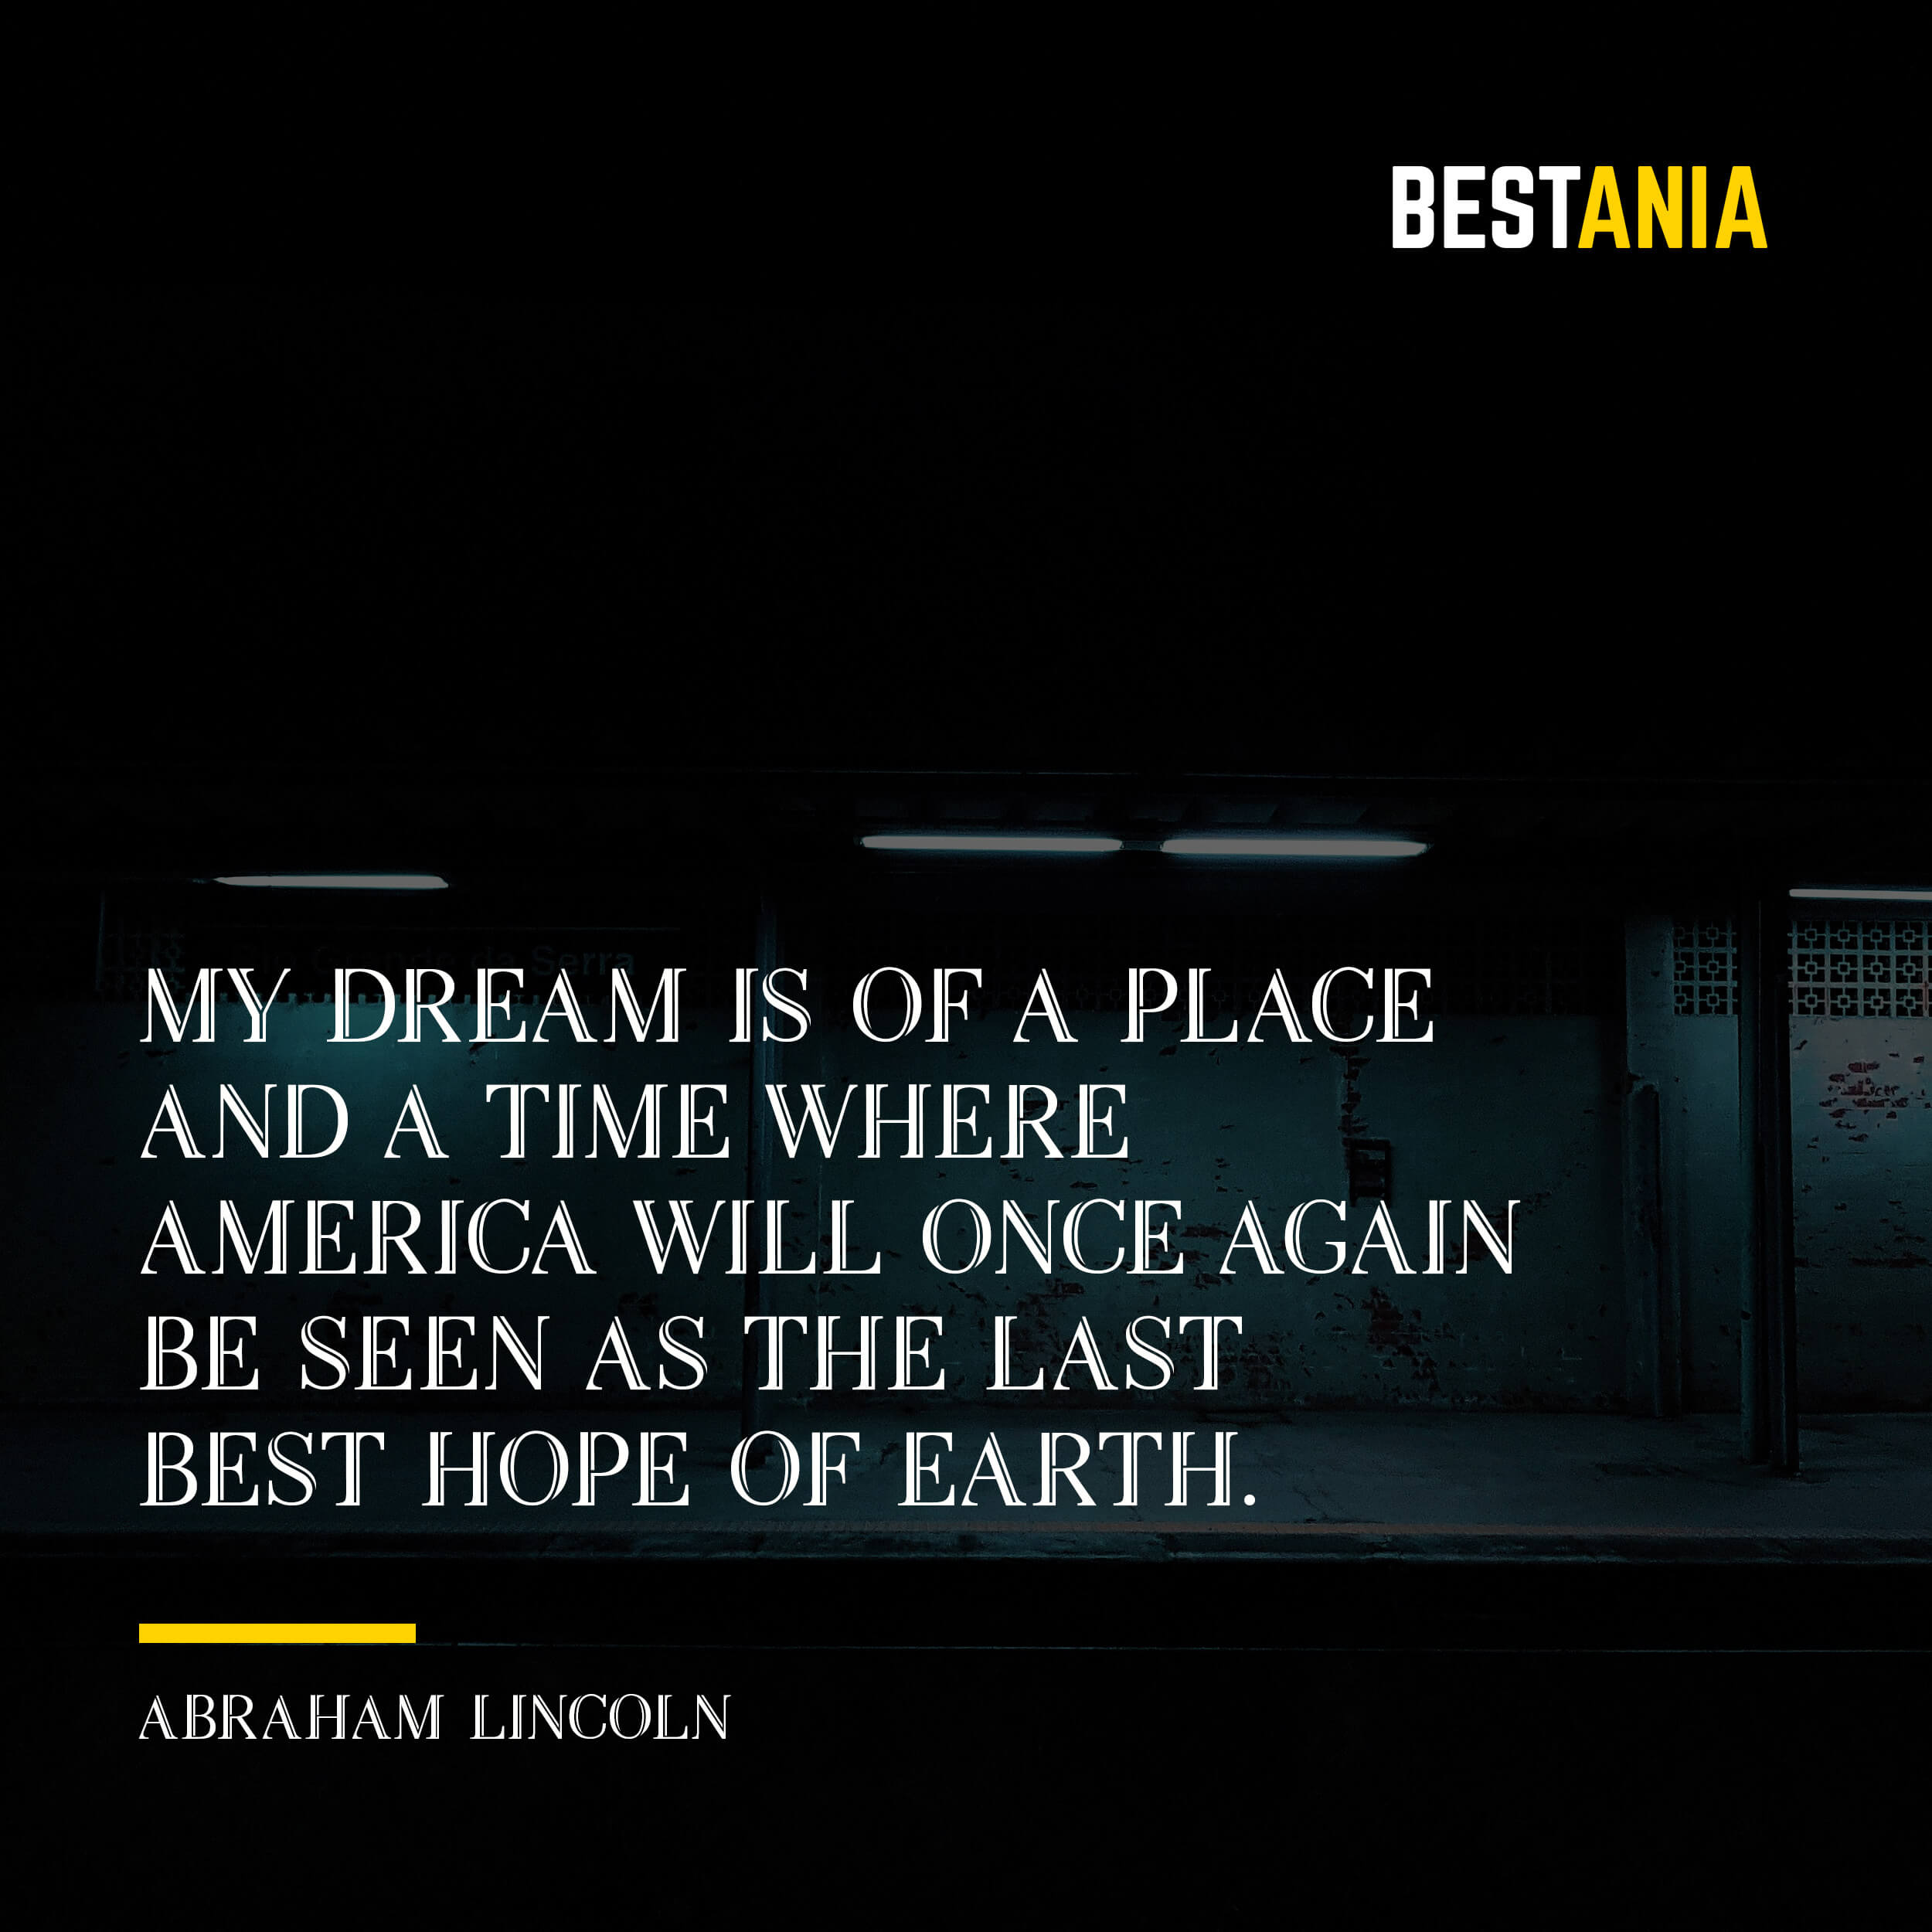 """""""MY DREAM IS OF A PLACE AND A TIME WHERE AMERICA WILL ONCE AGAIN BE SEEN AS THE LAST BEST HOPE OF EARTH."""" ABRAHAM LINCOLN"""